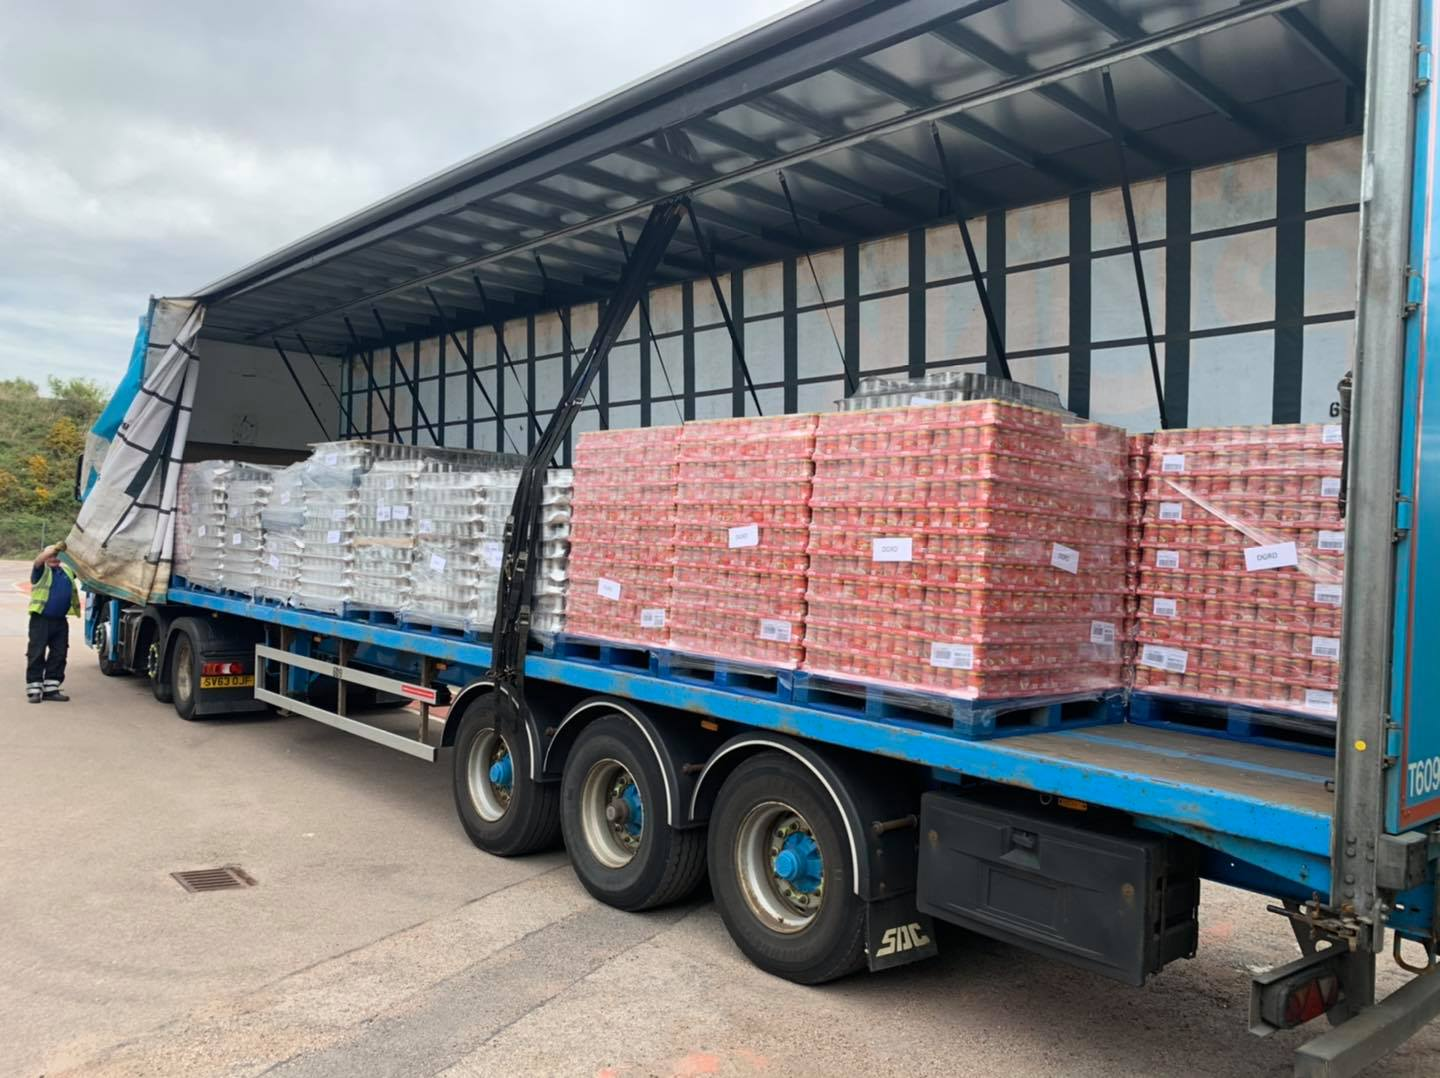 Somebody Cares received a delivery of 26 pallets of soup from Baxters